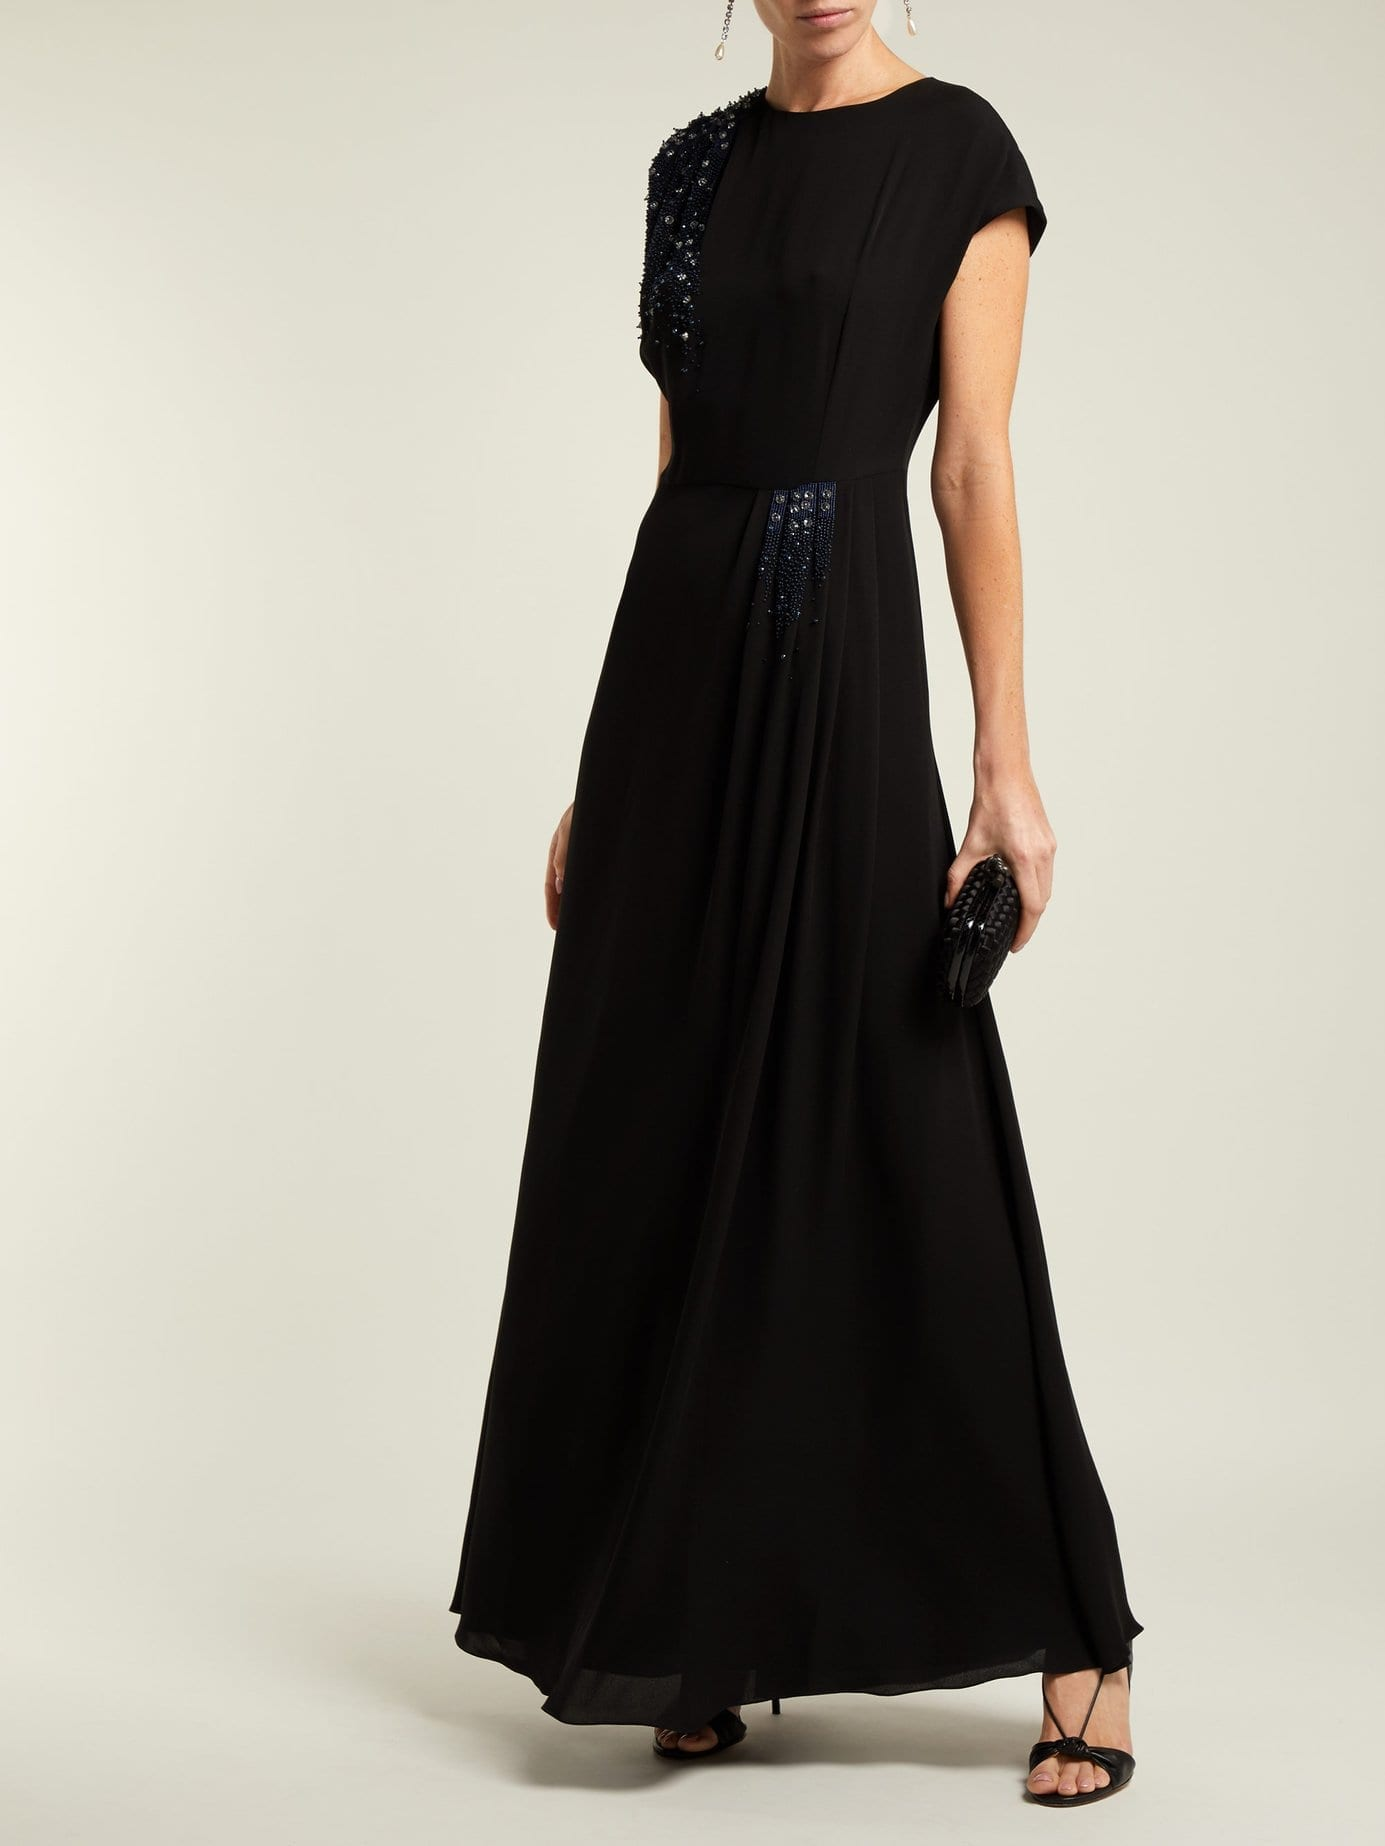 LANVIN Beaded Silk Georgette Black Gown - We Select Dresses